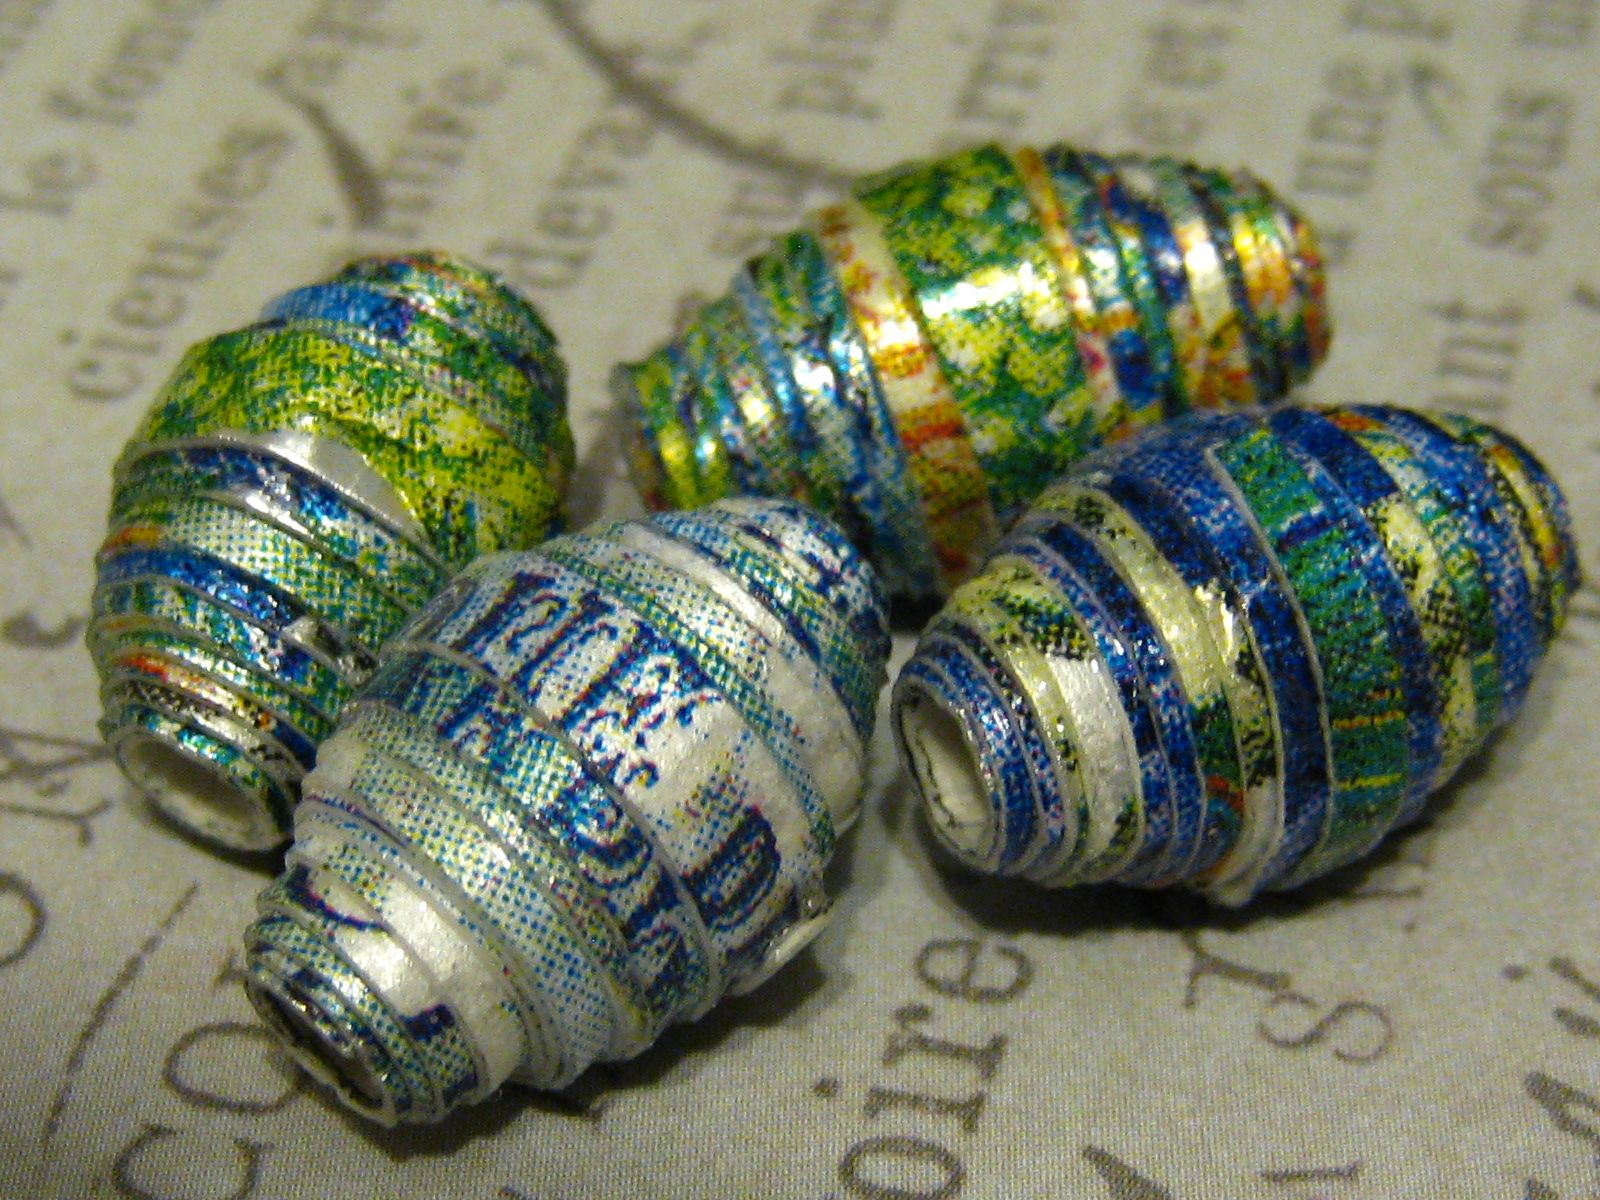 Paper Beads I Rolled By Adhering A Fancy Napkin To Silver